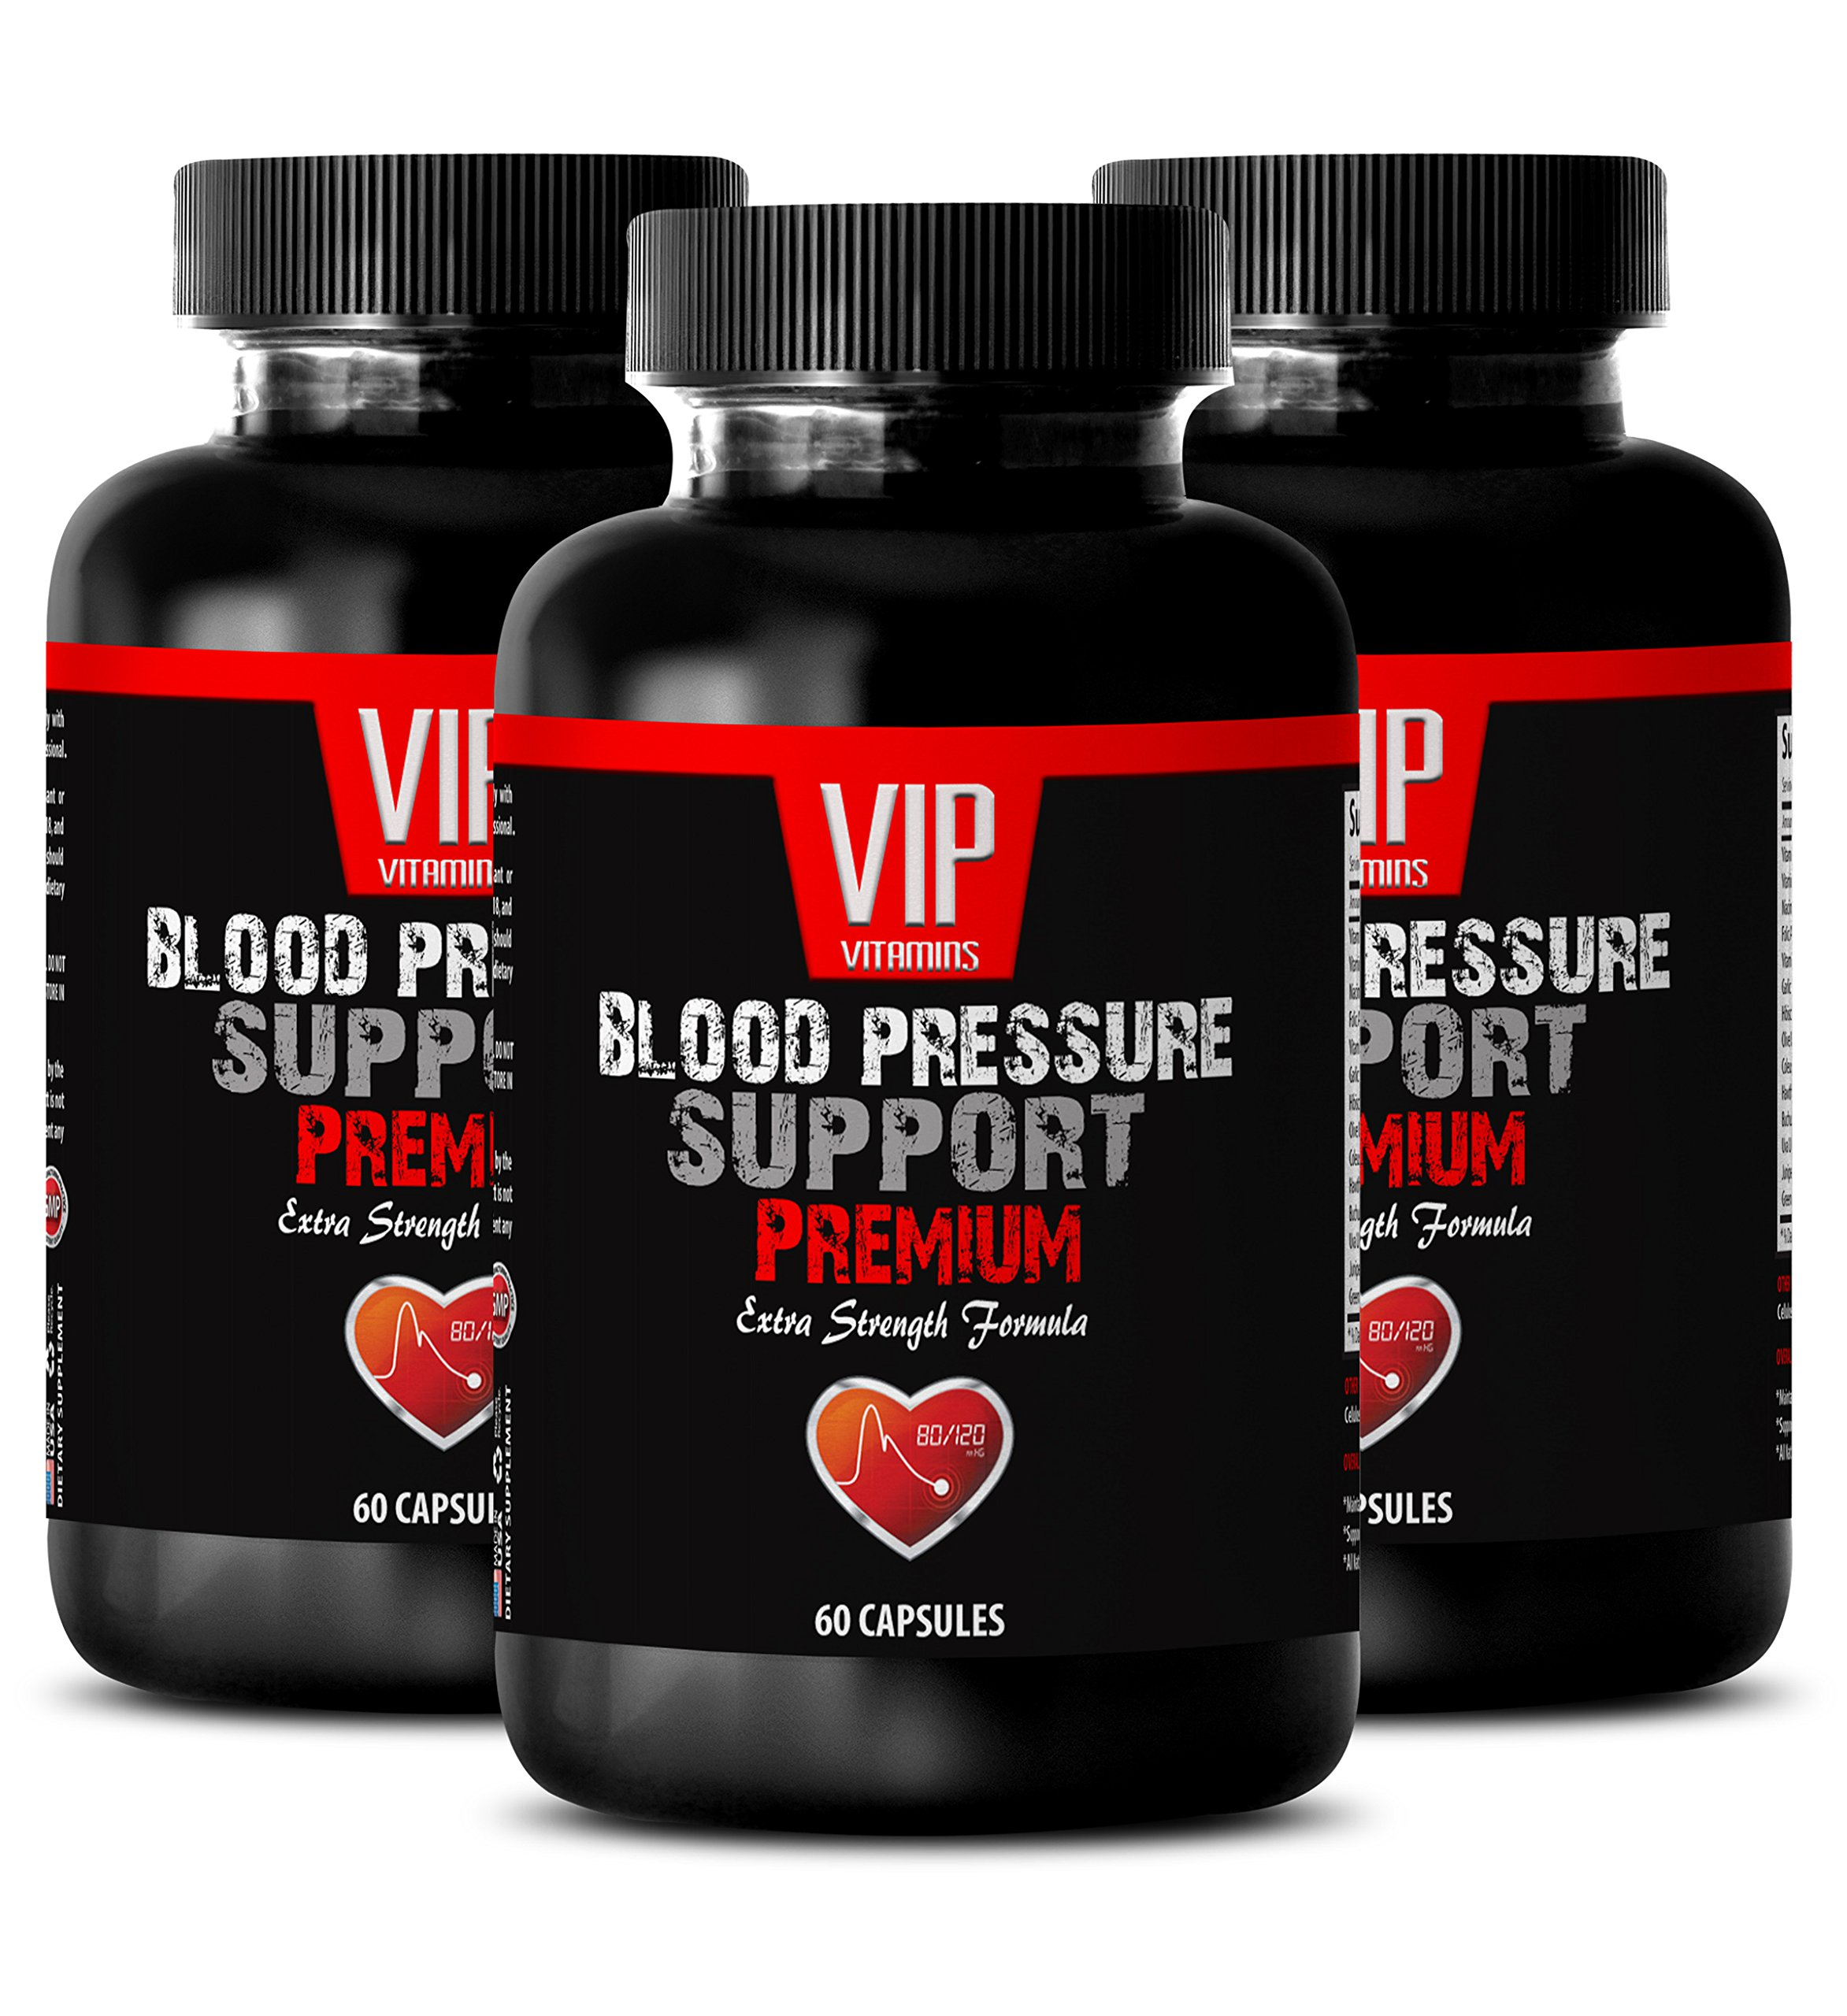 Blood Pressure Herbal Supplement - Blood Pressure Support - Premium Extra Strength Formula - Energy Boost Vitamin Supplement - 3 Bottles (180 Capsules) by VIP VITAMINS (Image #1)